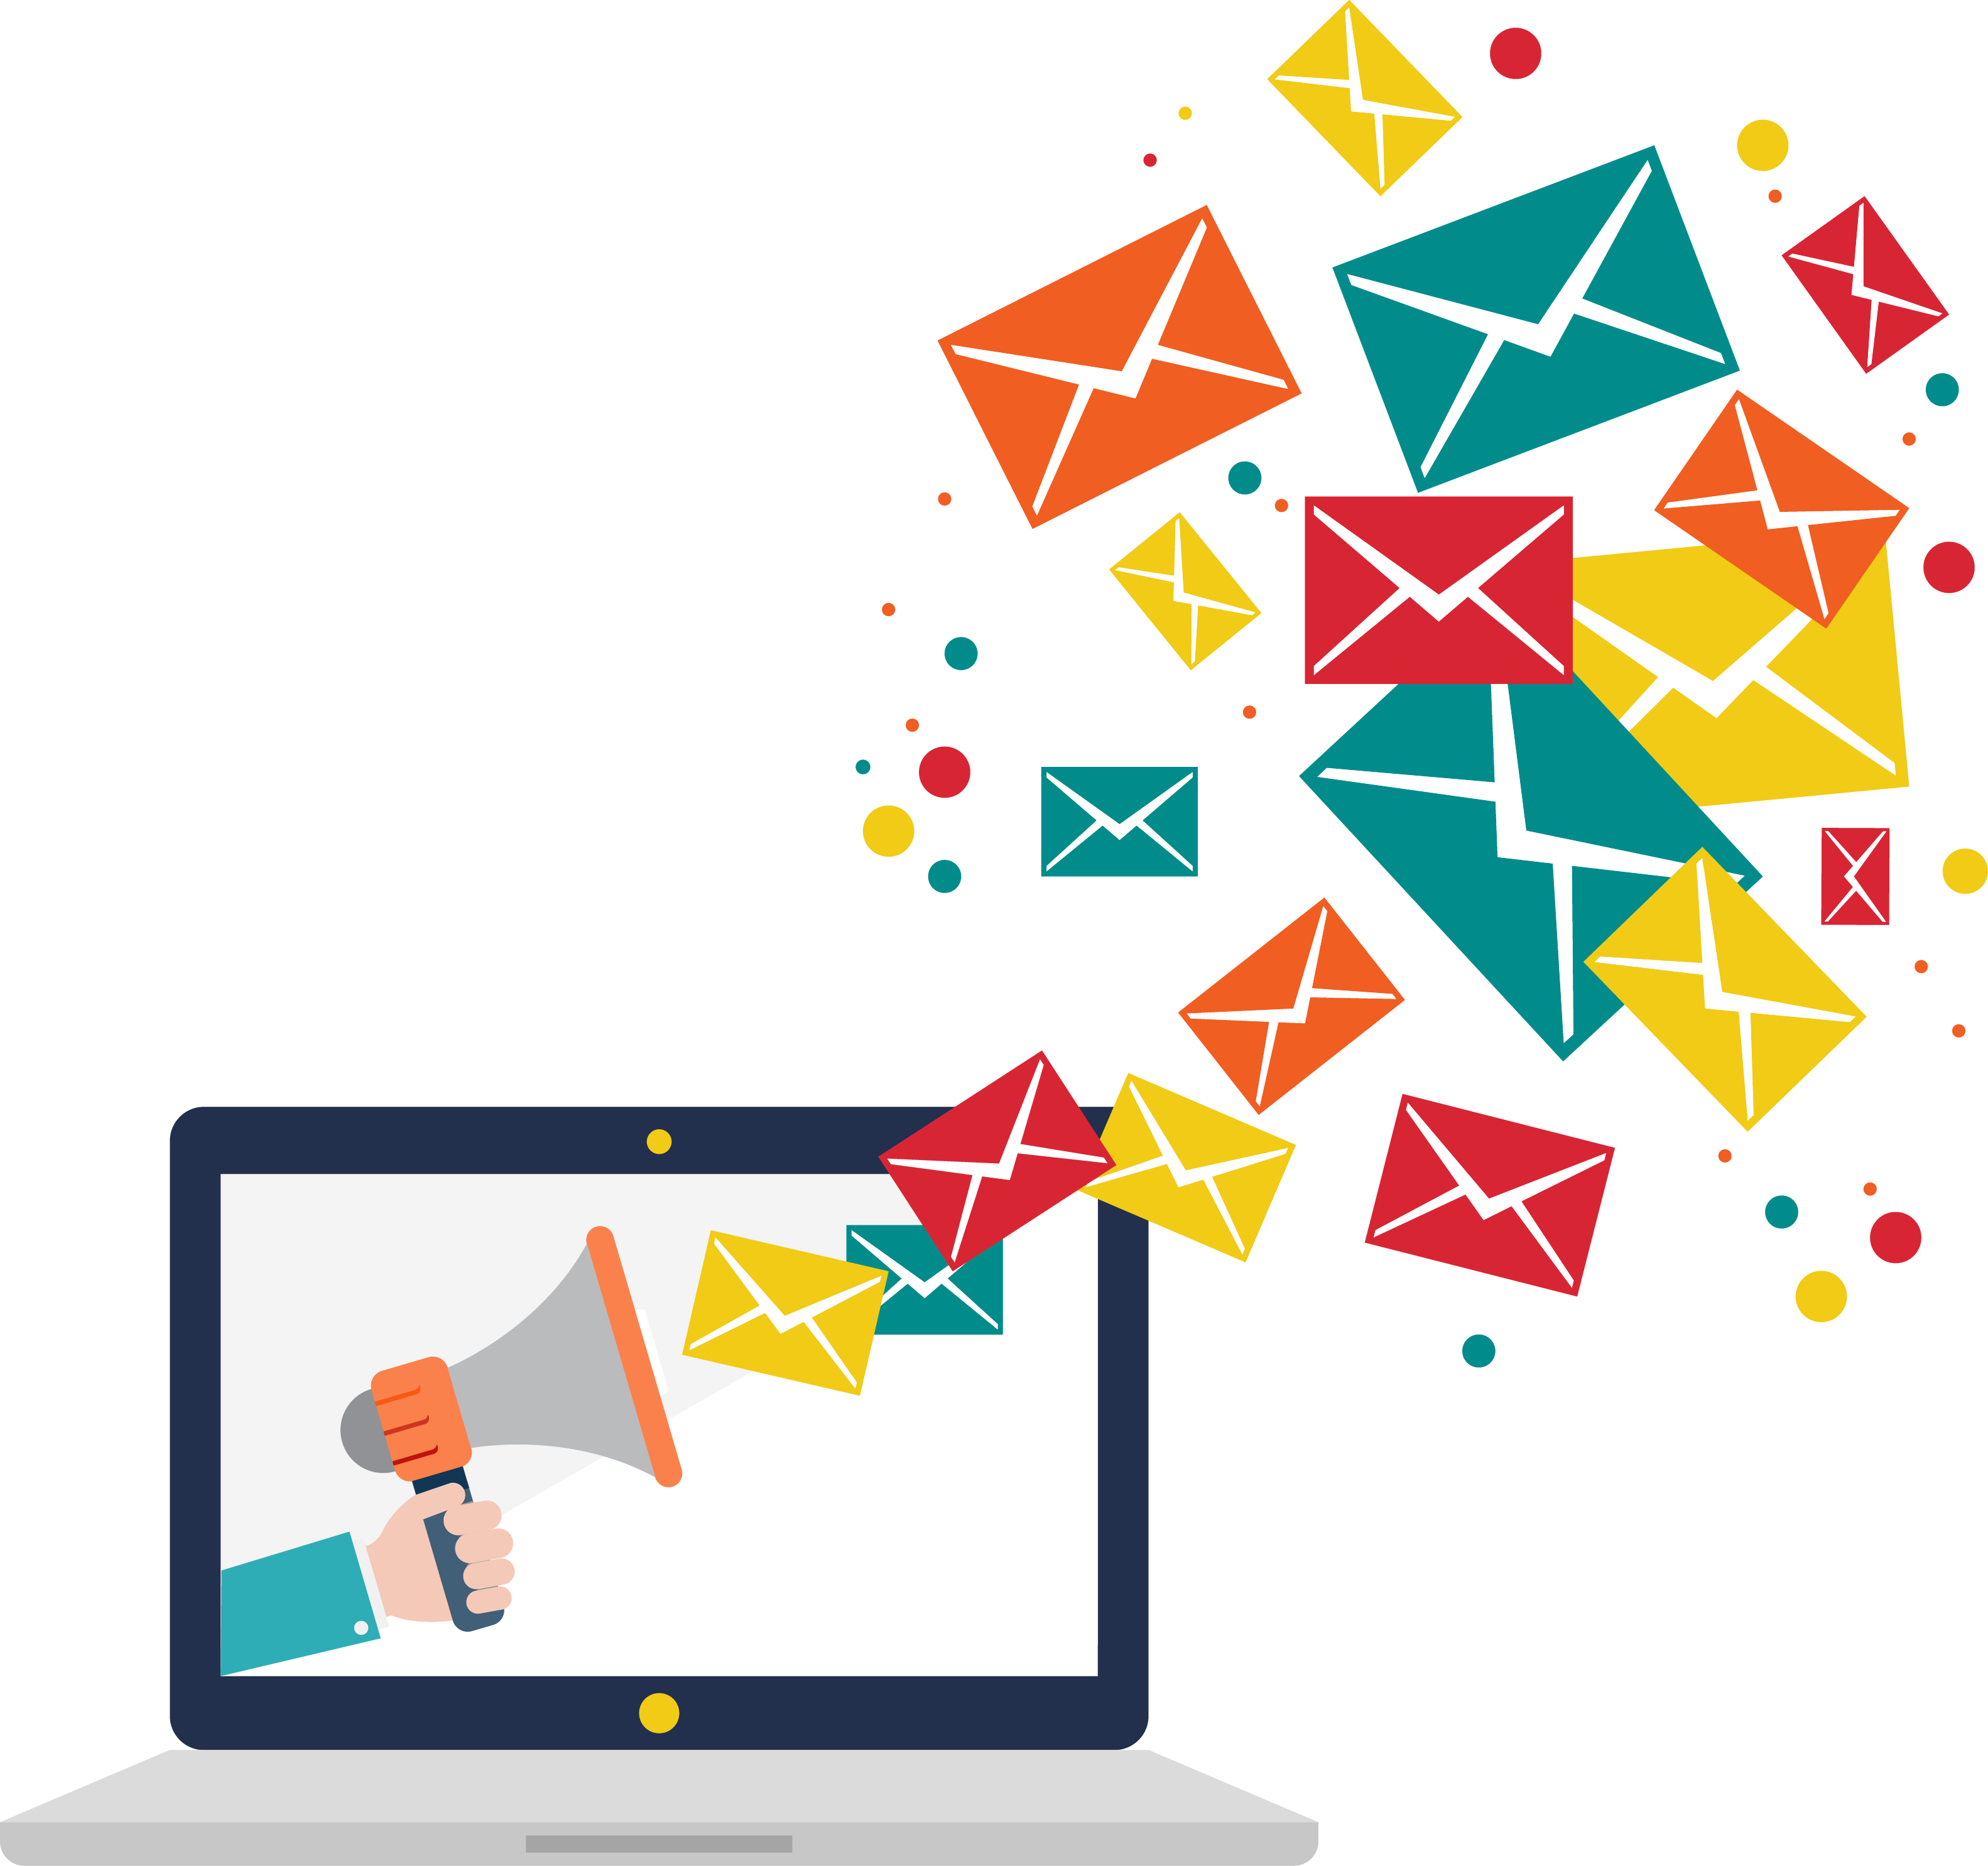 Email Marketing Png - Email Marketing, Transparent background PNG HD thumbnail